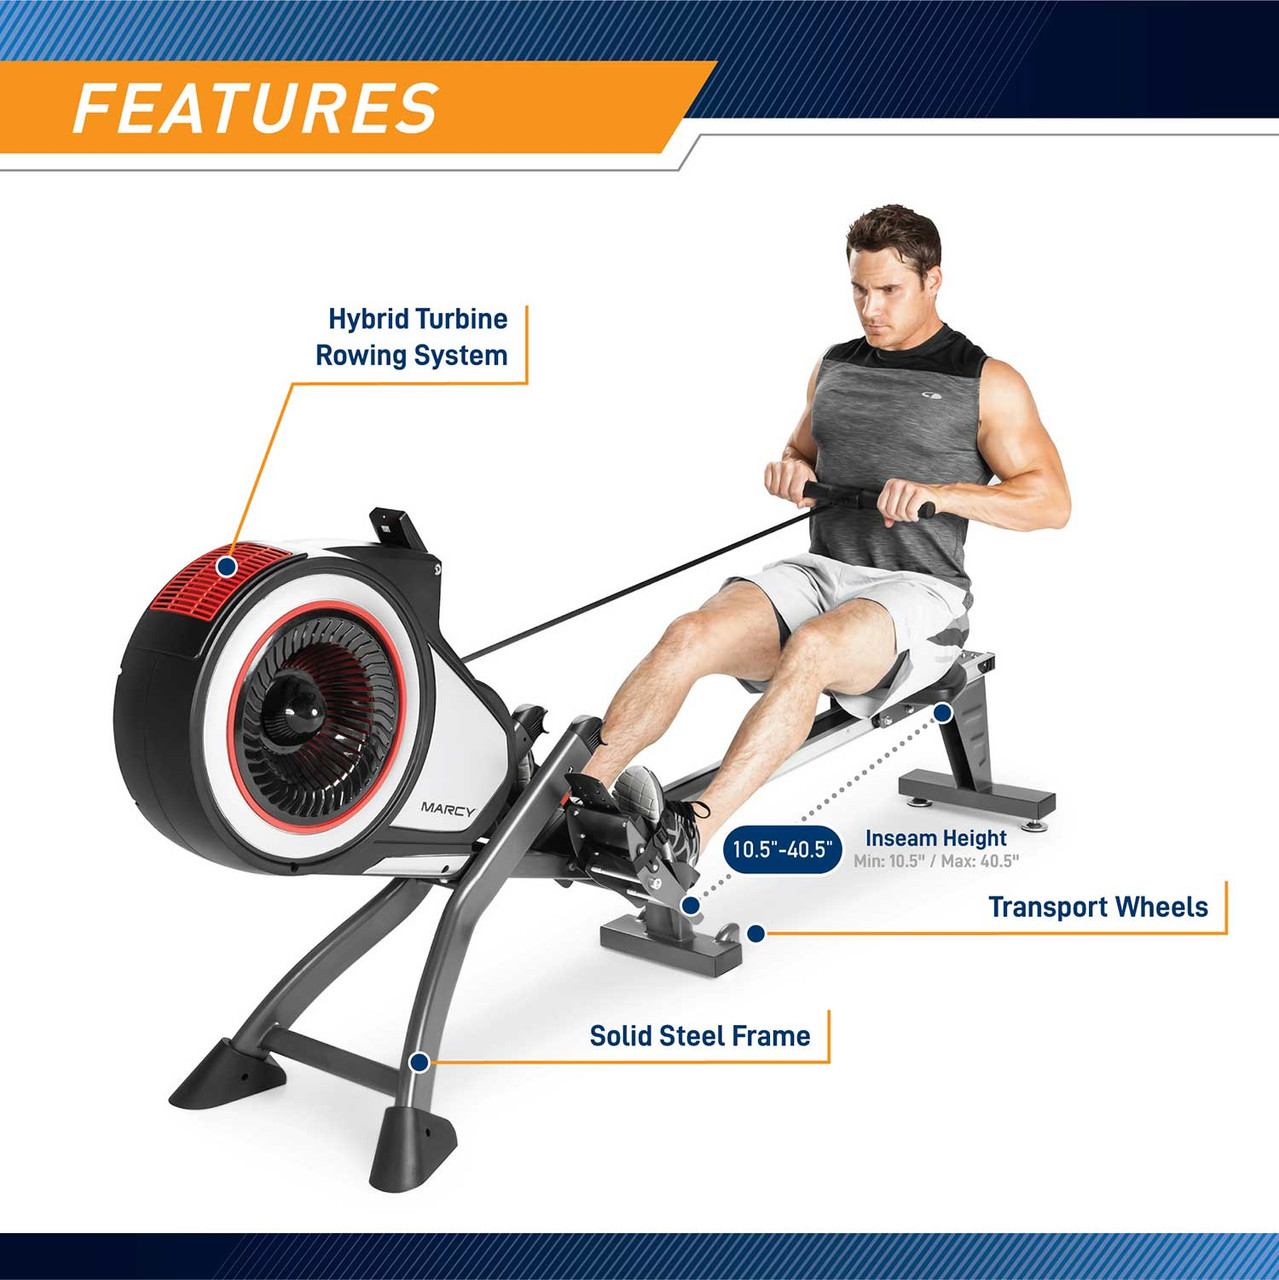 The Marcy Turbine Rower NS-6050RE has a comfortable seat